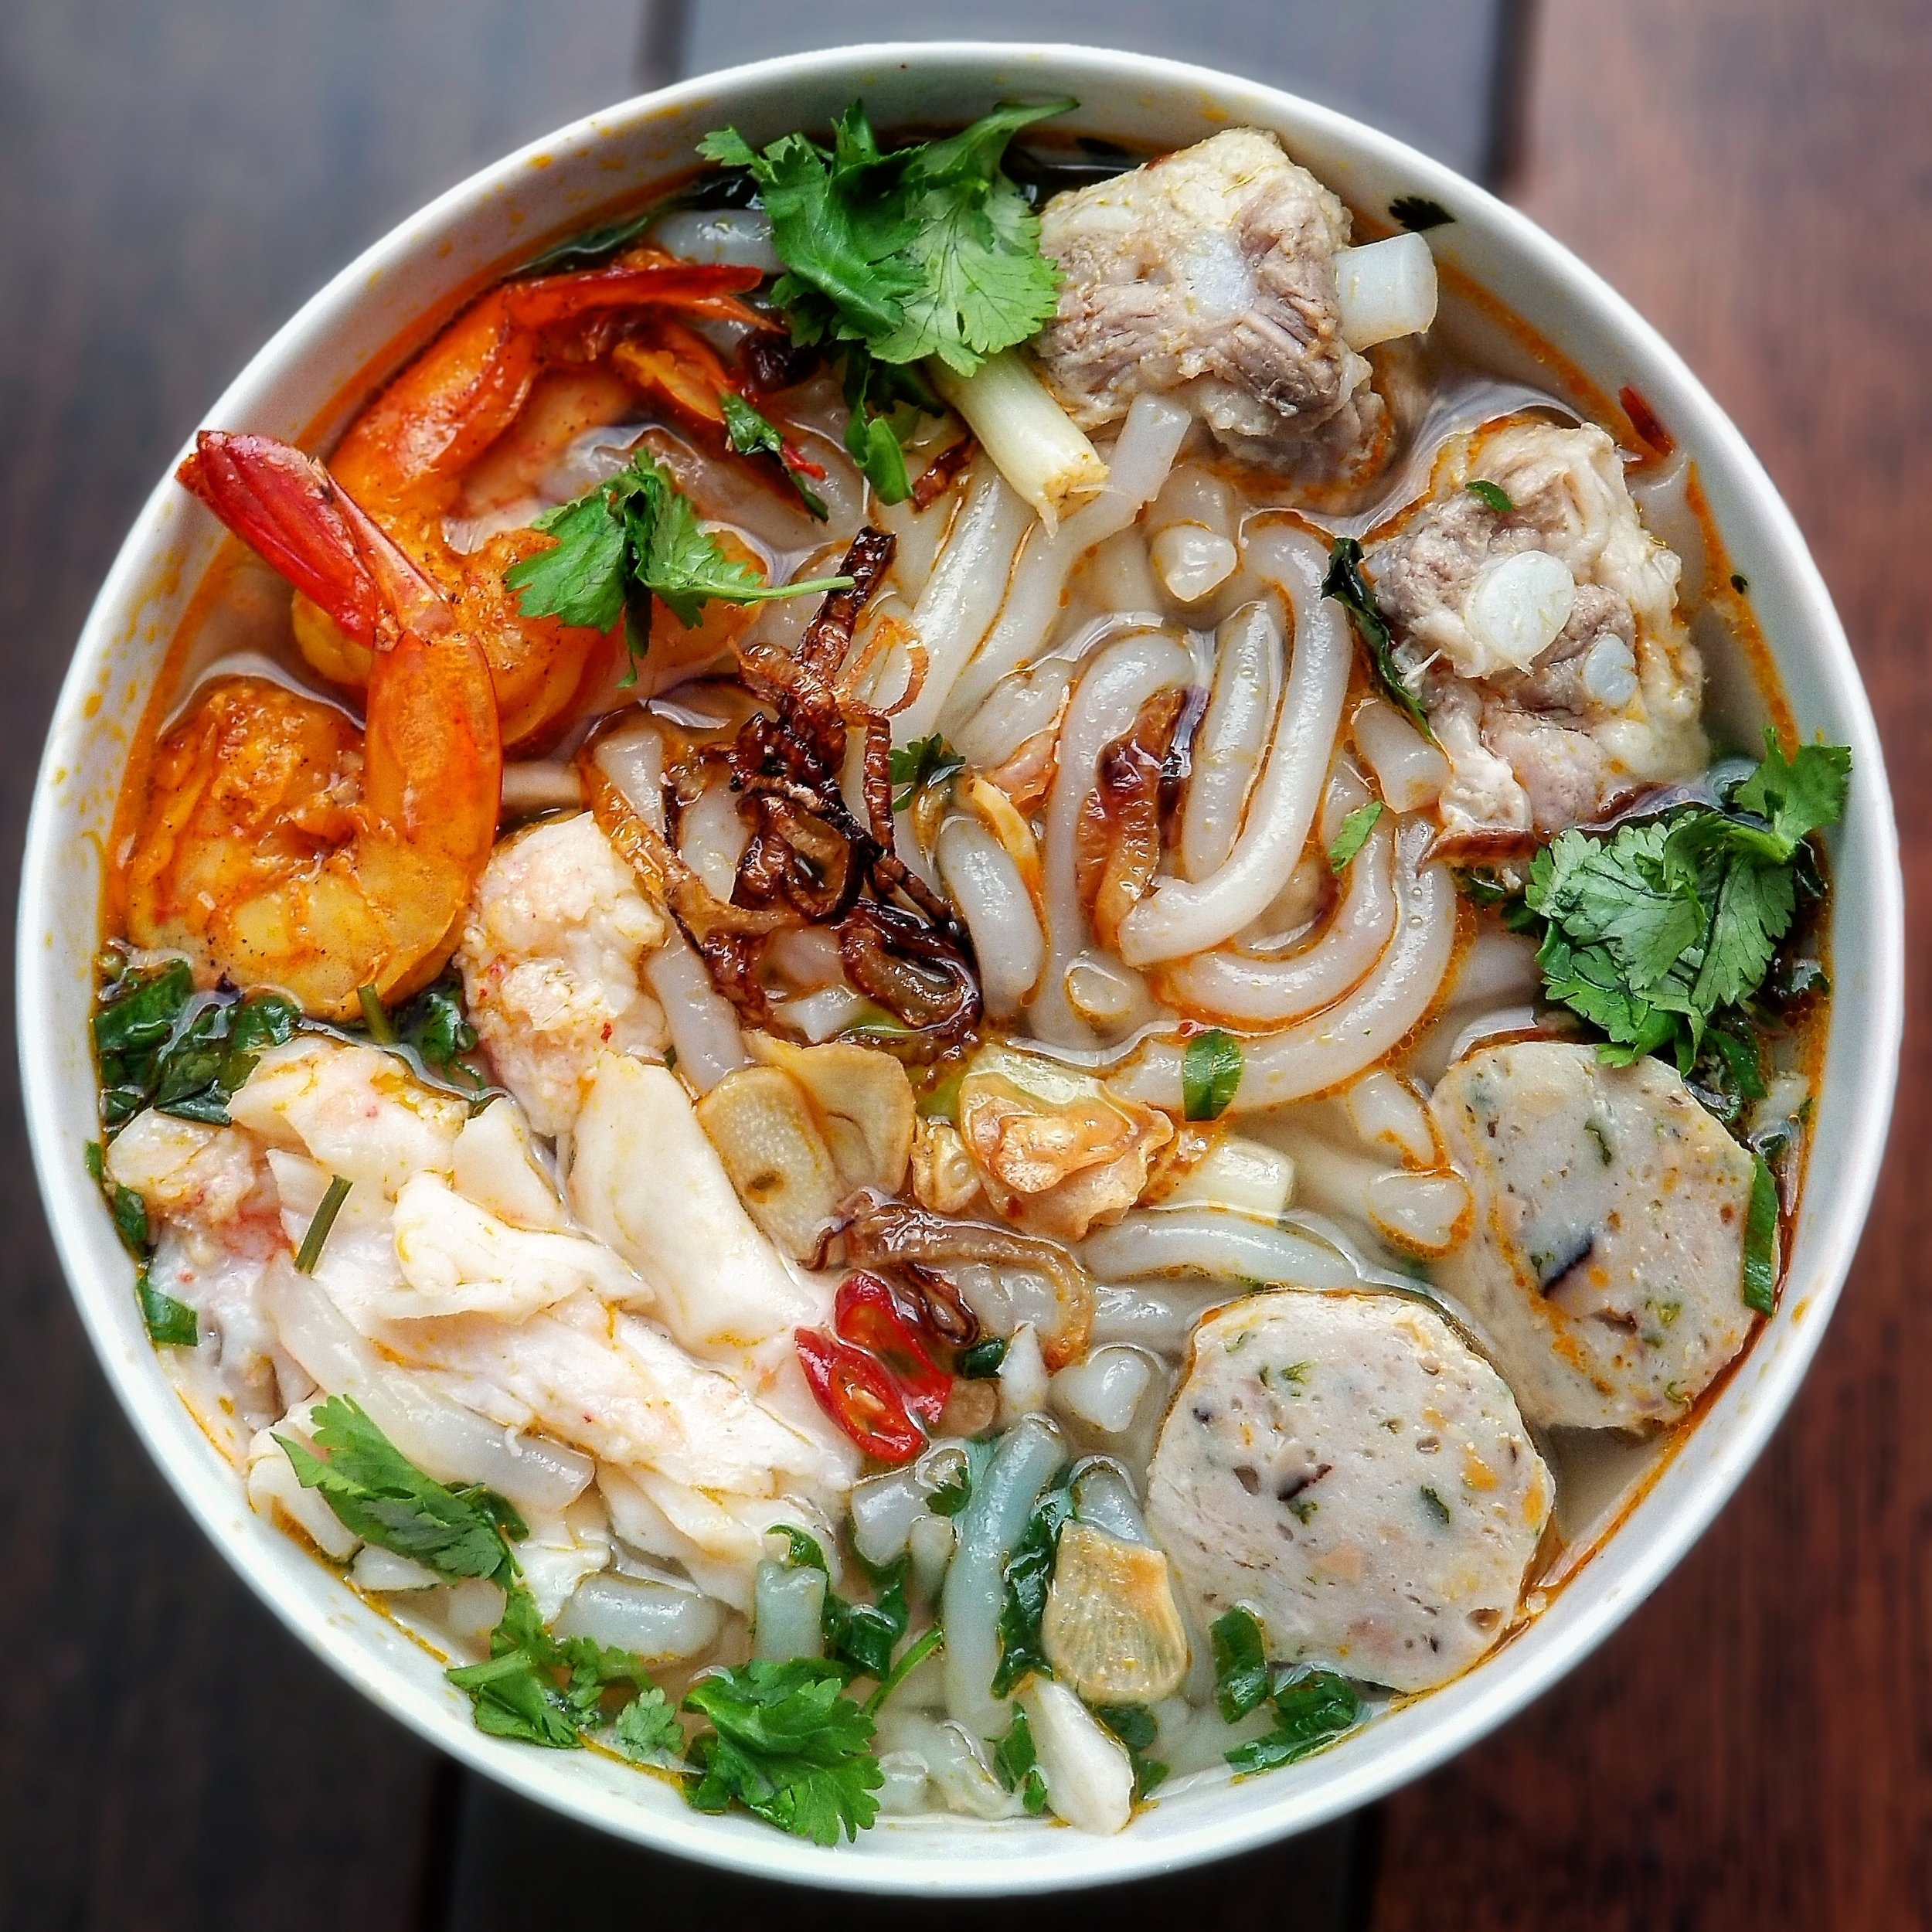 Bánh Canh Tôm Cua Chả Cá - Tapioca noodles in a pork and shrimp broth with shrimp, crab, fish cakes, fried garlic chips, fried shallots, scallion, cilantro and a bit of spicy saté chili paste